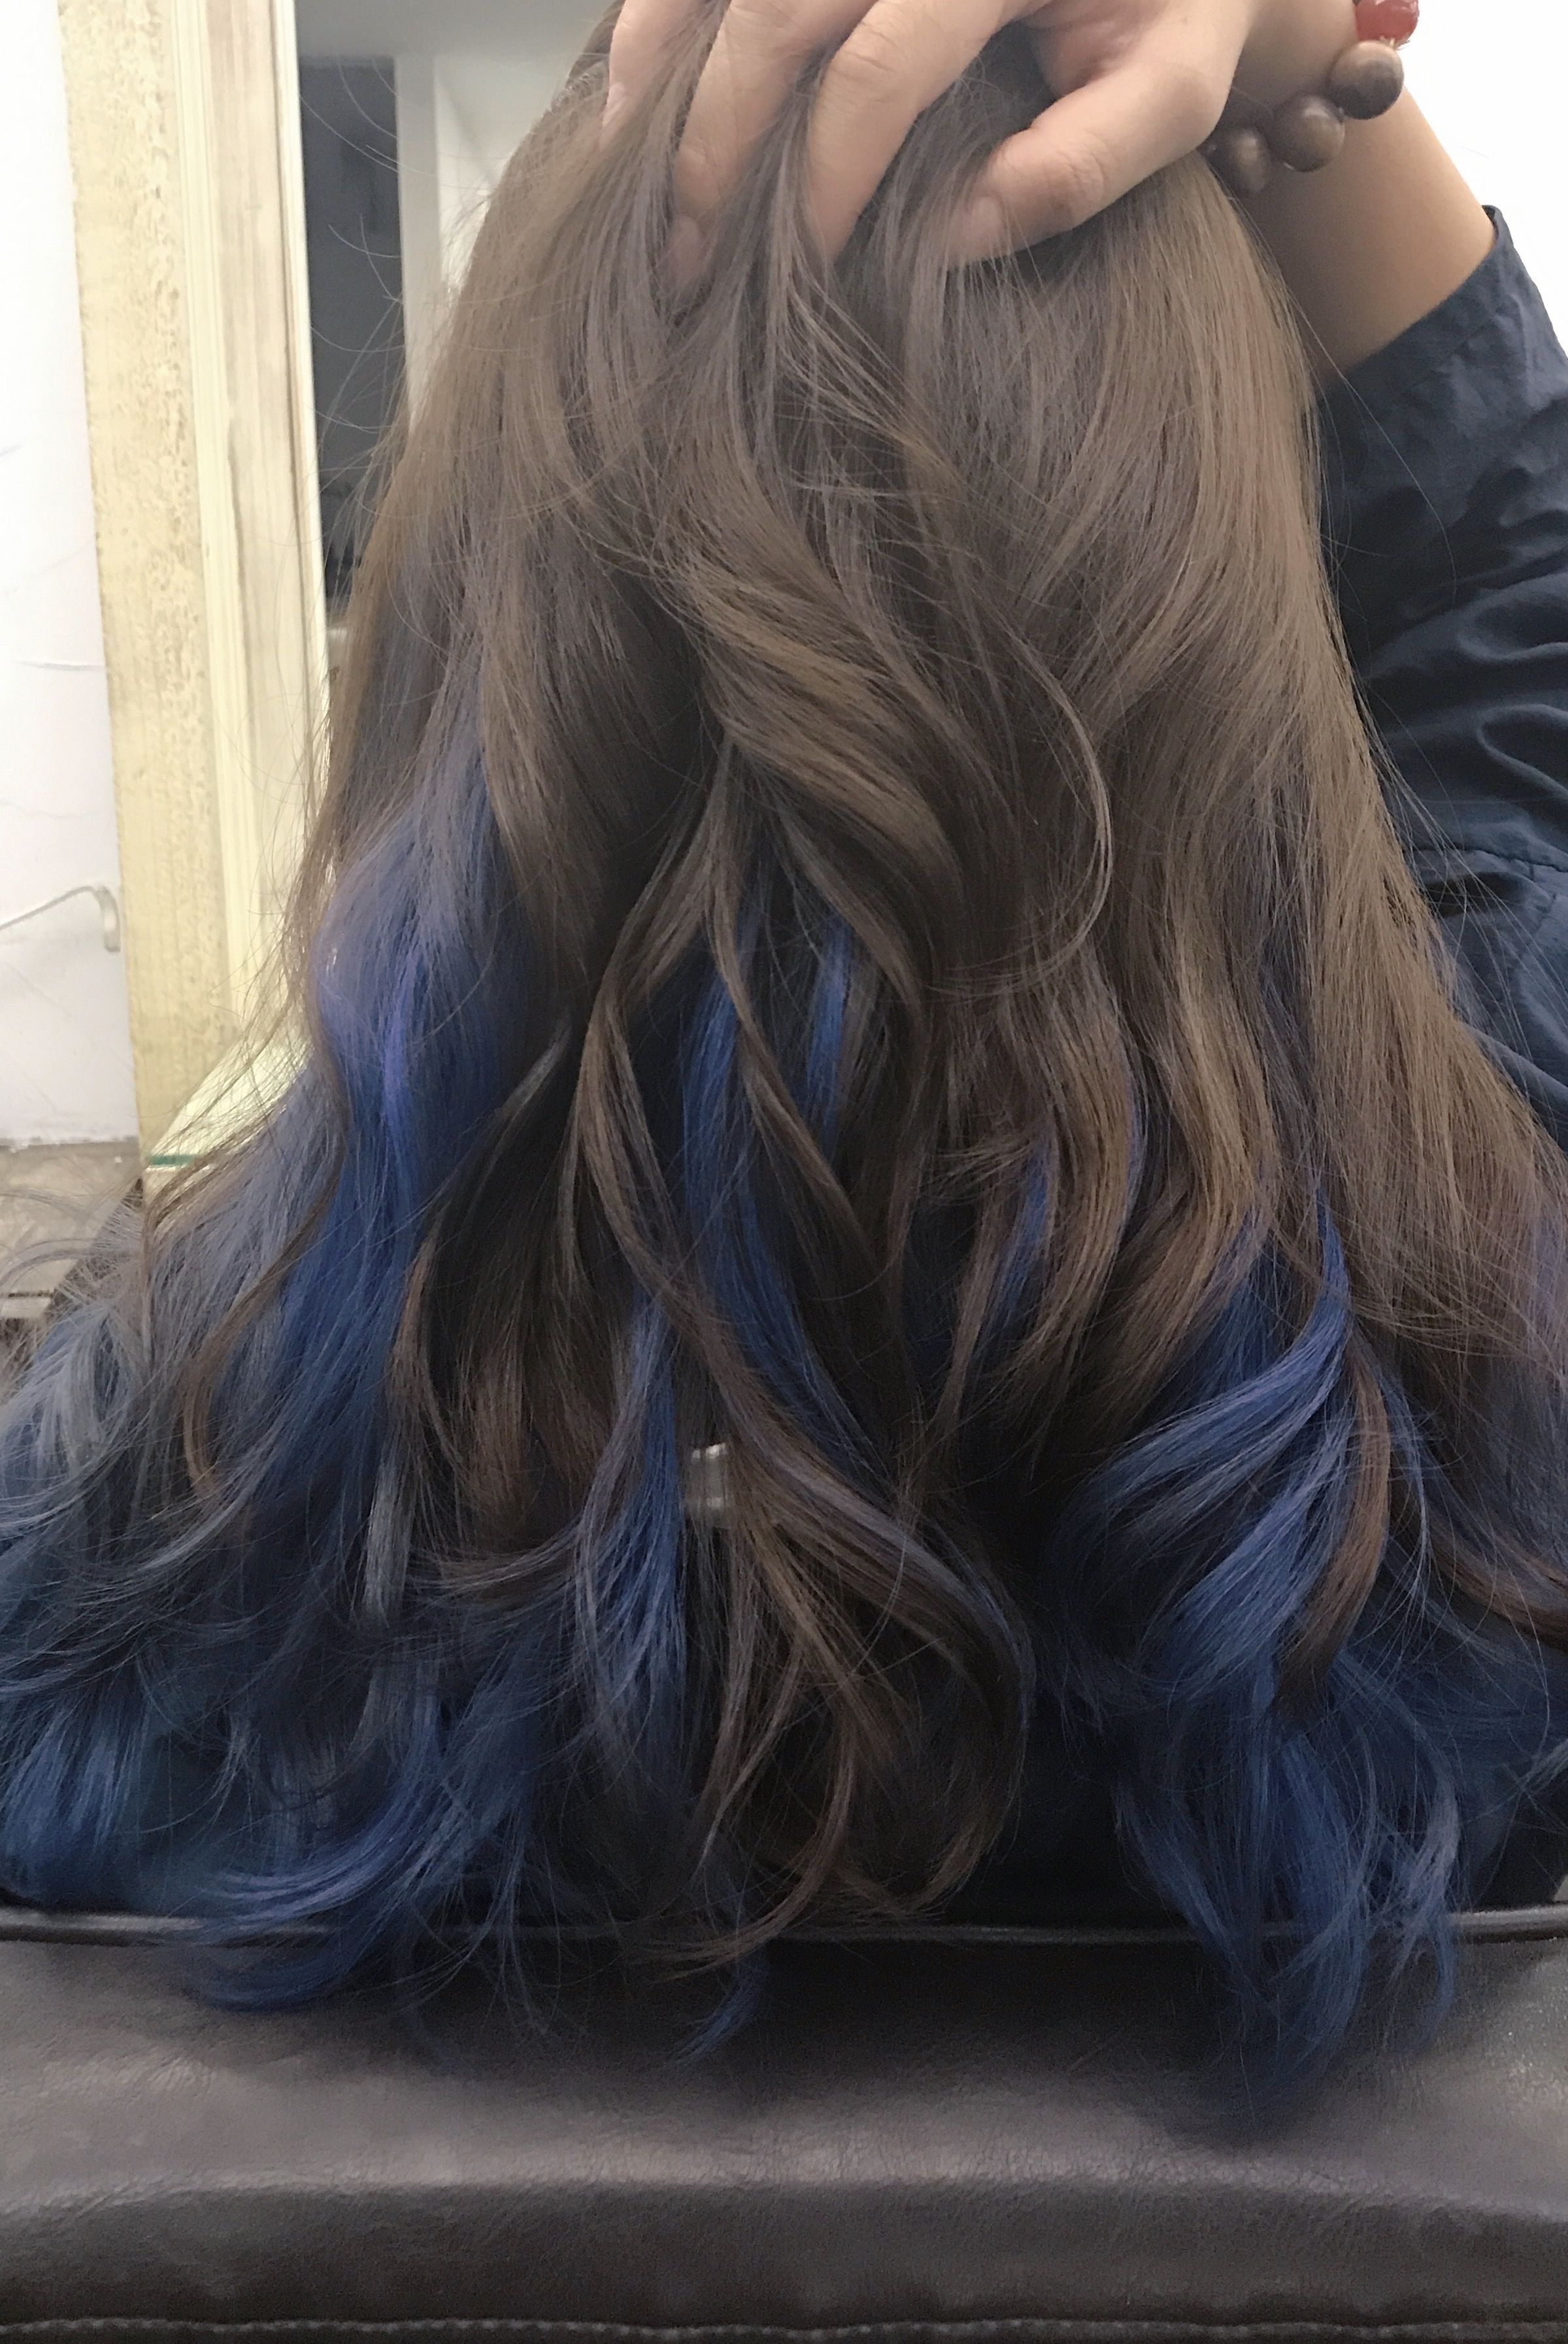 20 Ombre Blue Colors Hairstyles Ideas In 2020 Hair Styles Blue Tips Hair Blue Hair Highlights